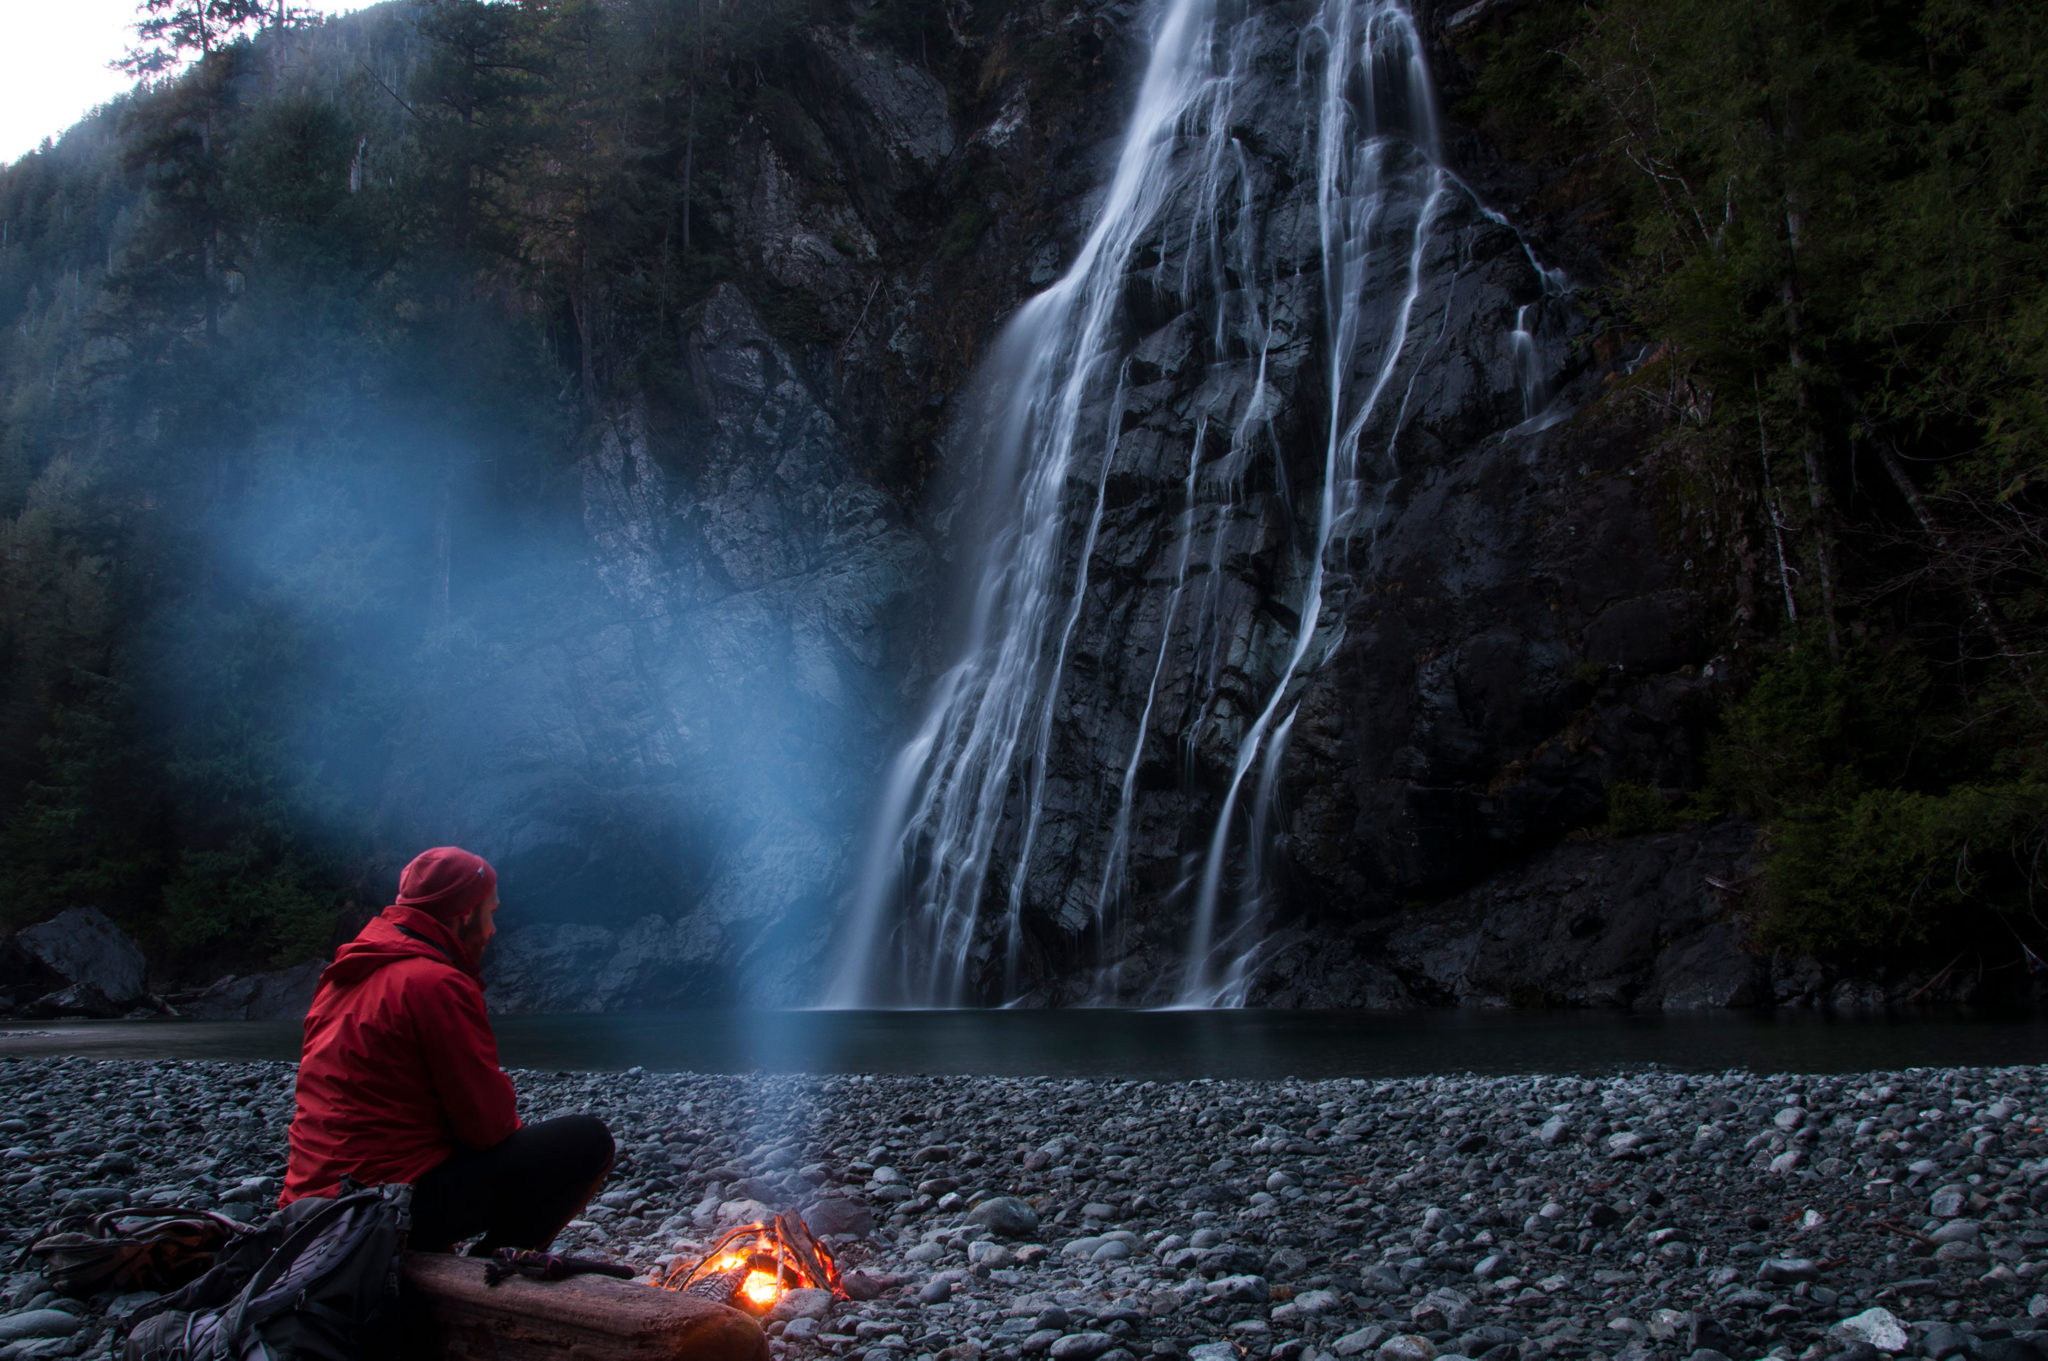 Cody And Fire By Virgin Falls